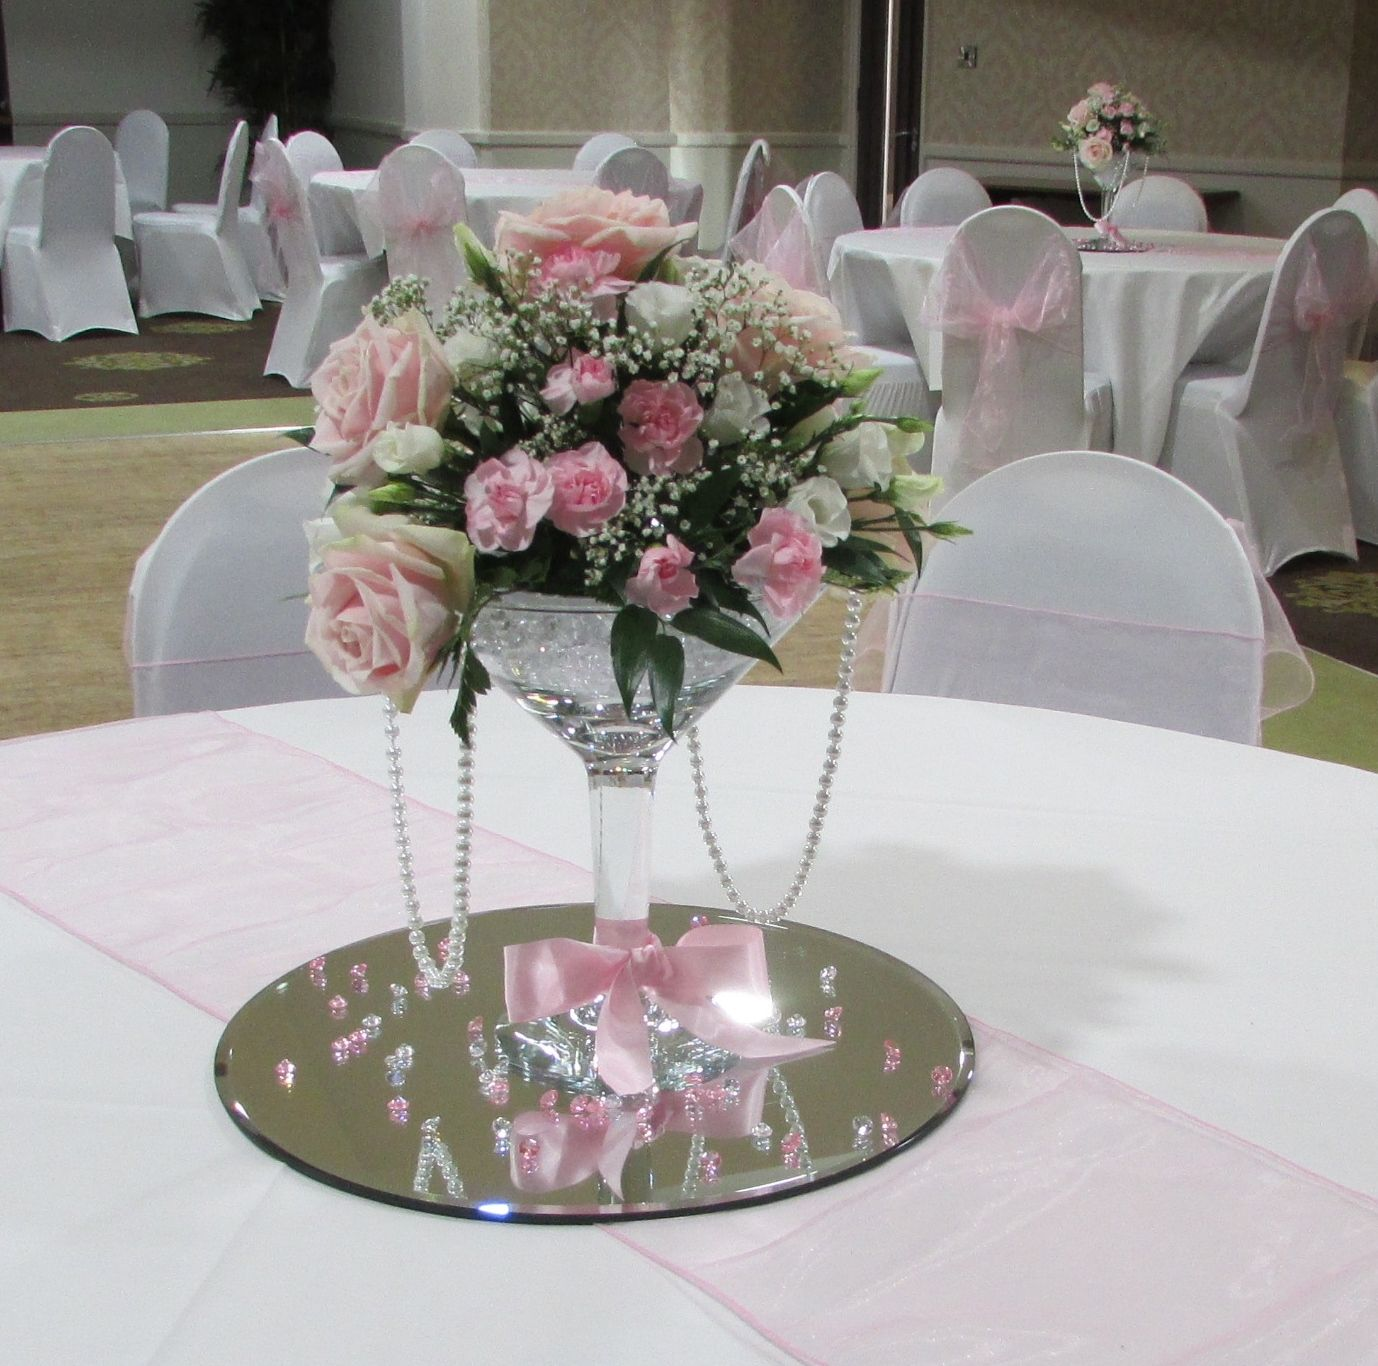 Grand Martini Vase With Fresh Flowers In Pinks Ribbon And Pearls Table Centrepieces For Hire